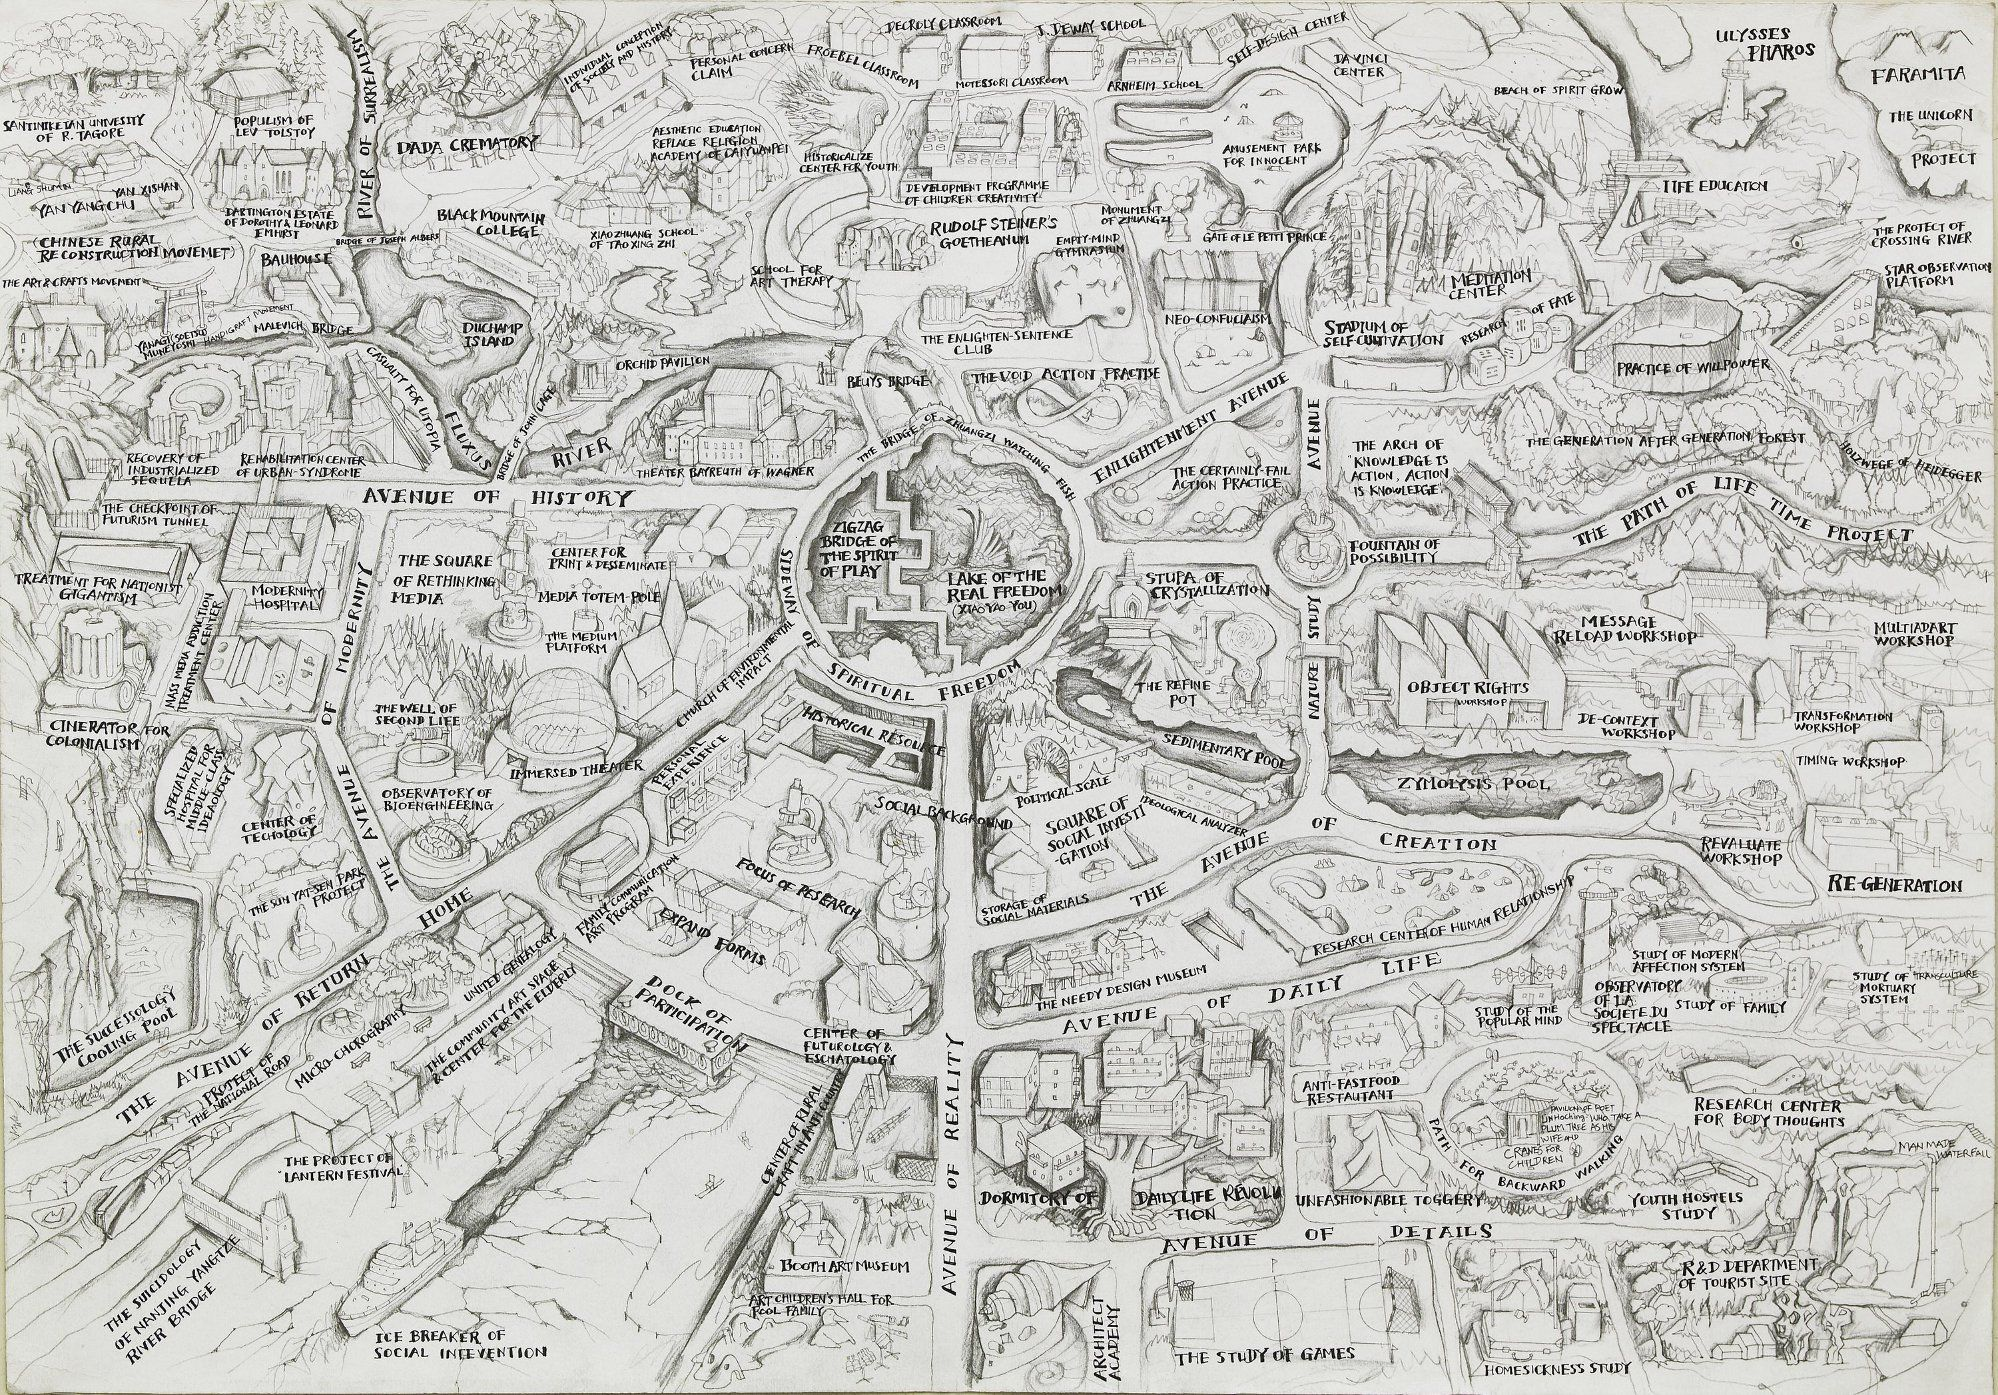 The Map of total art by Qiu